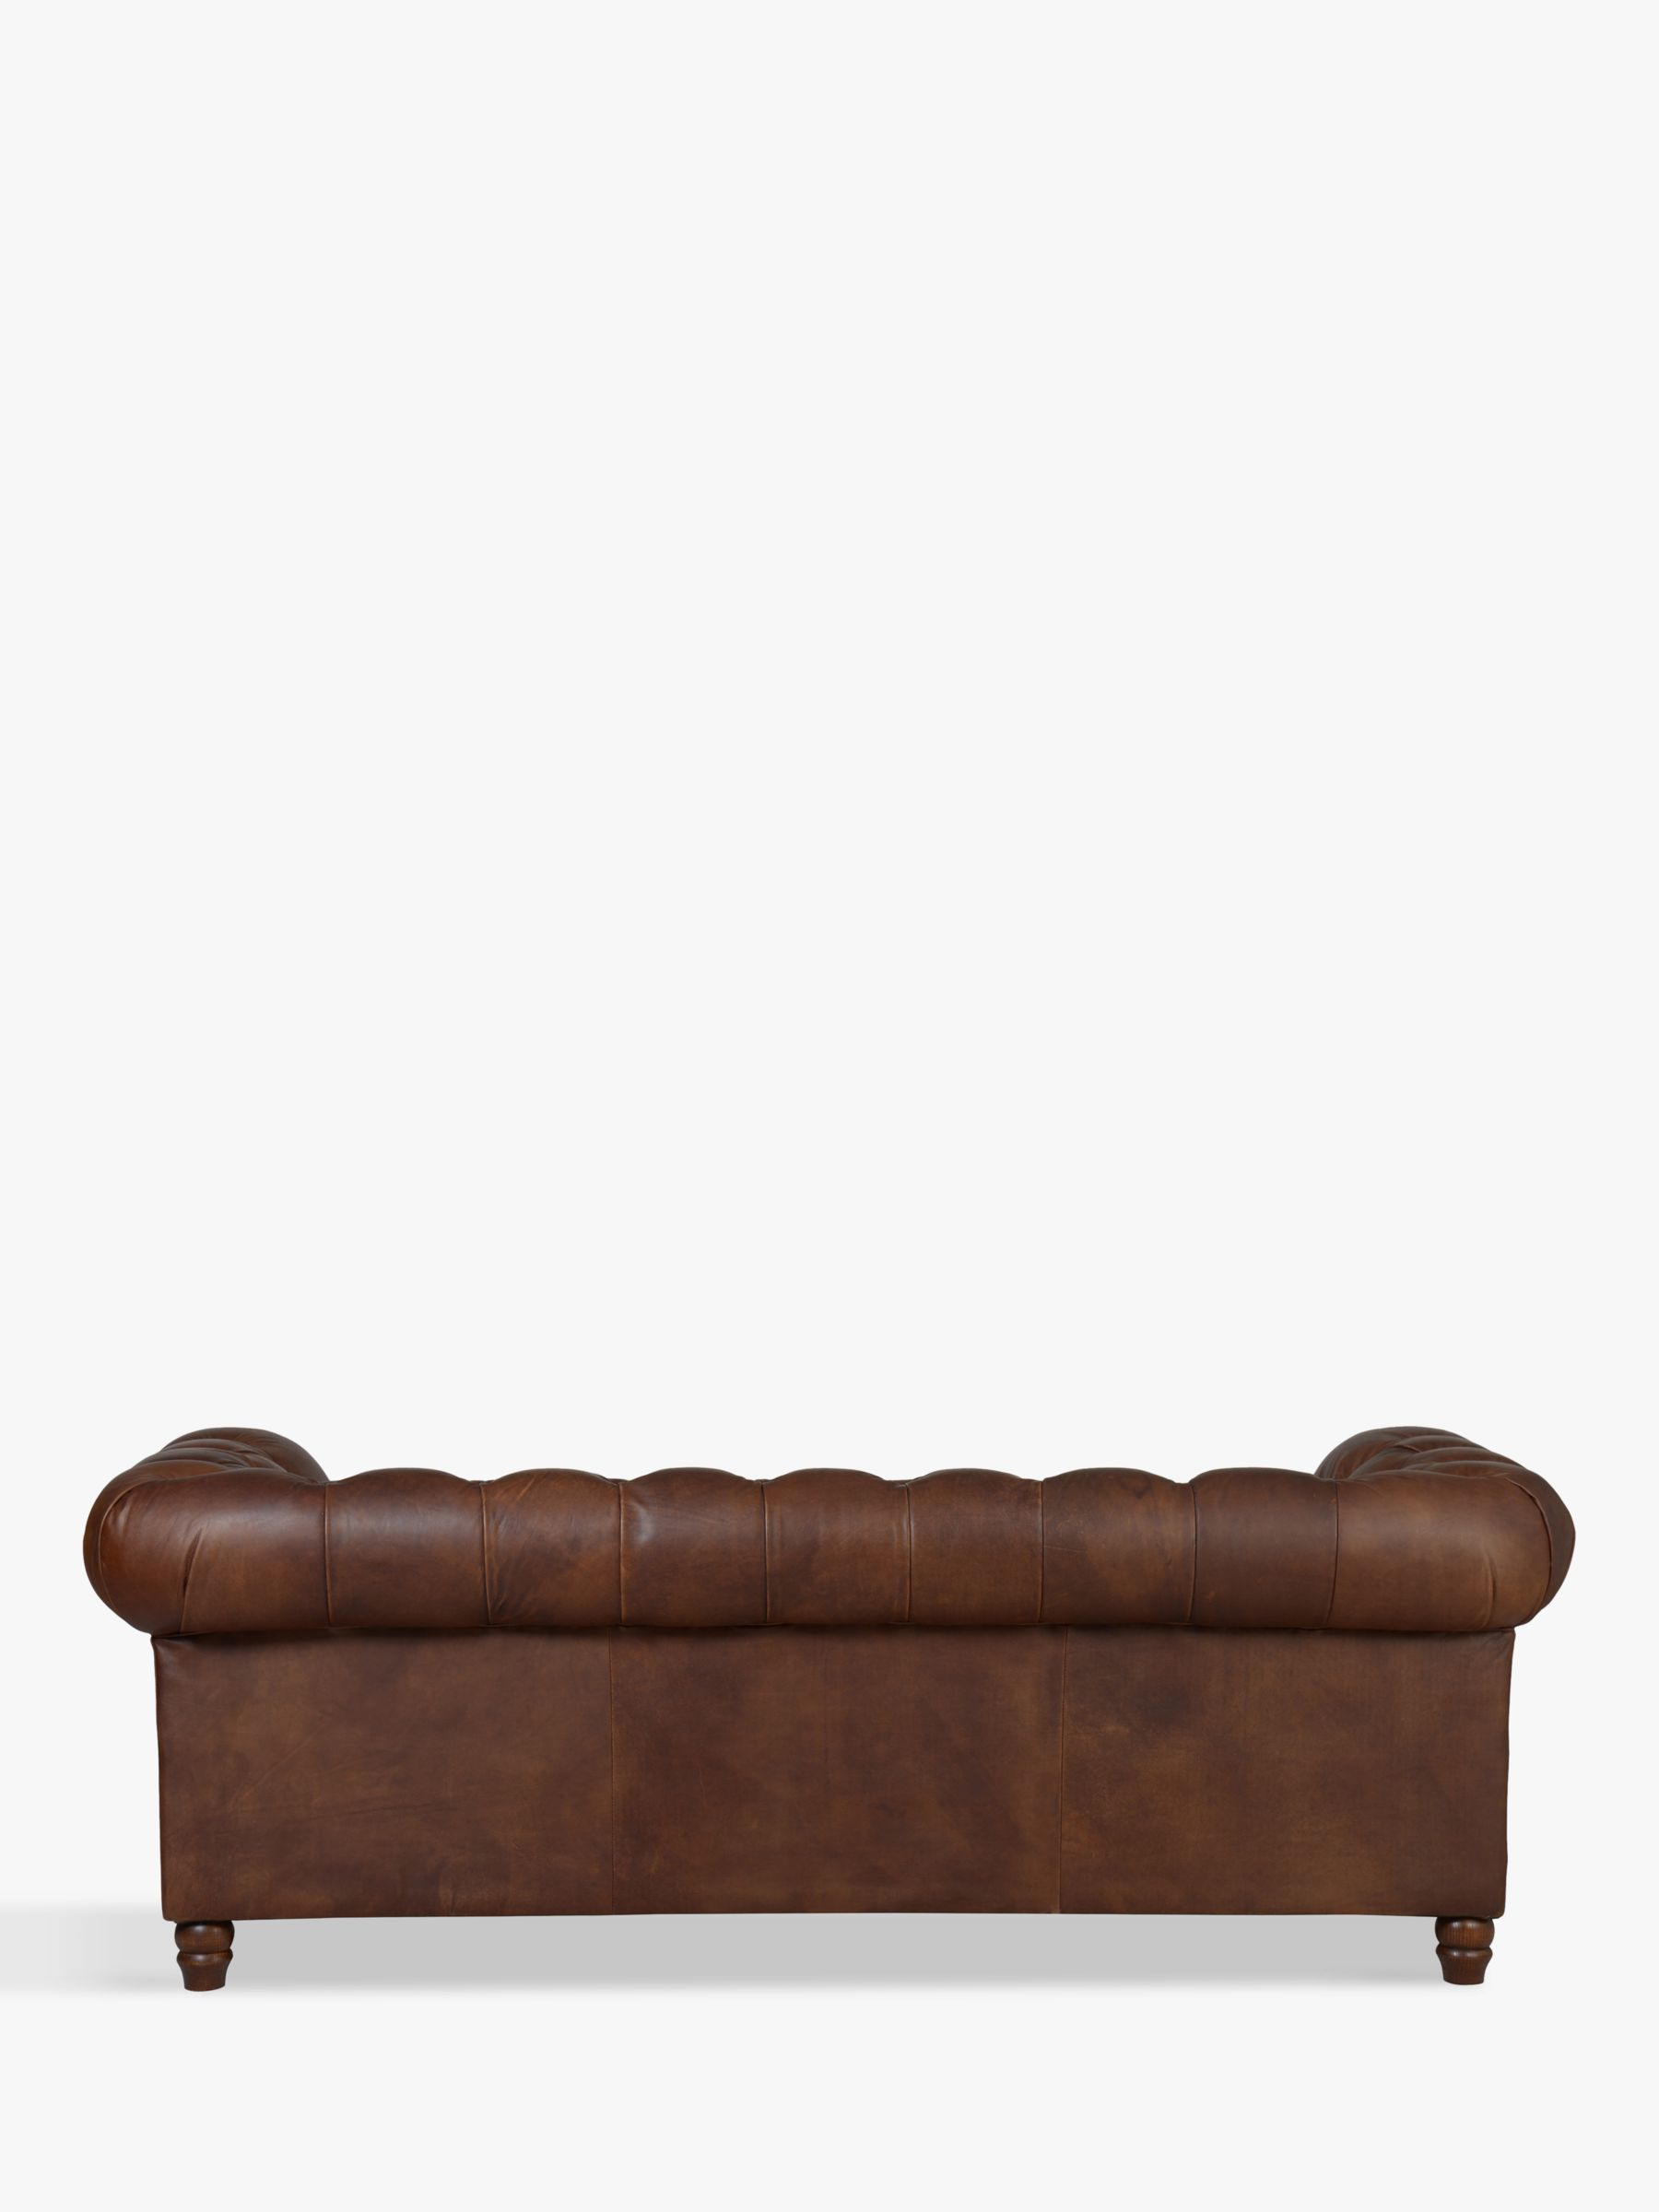 scotch and sofa bed cheap nz halo earle aniline leather chesterfield large